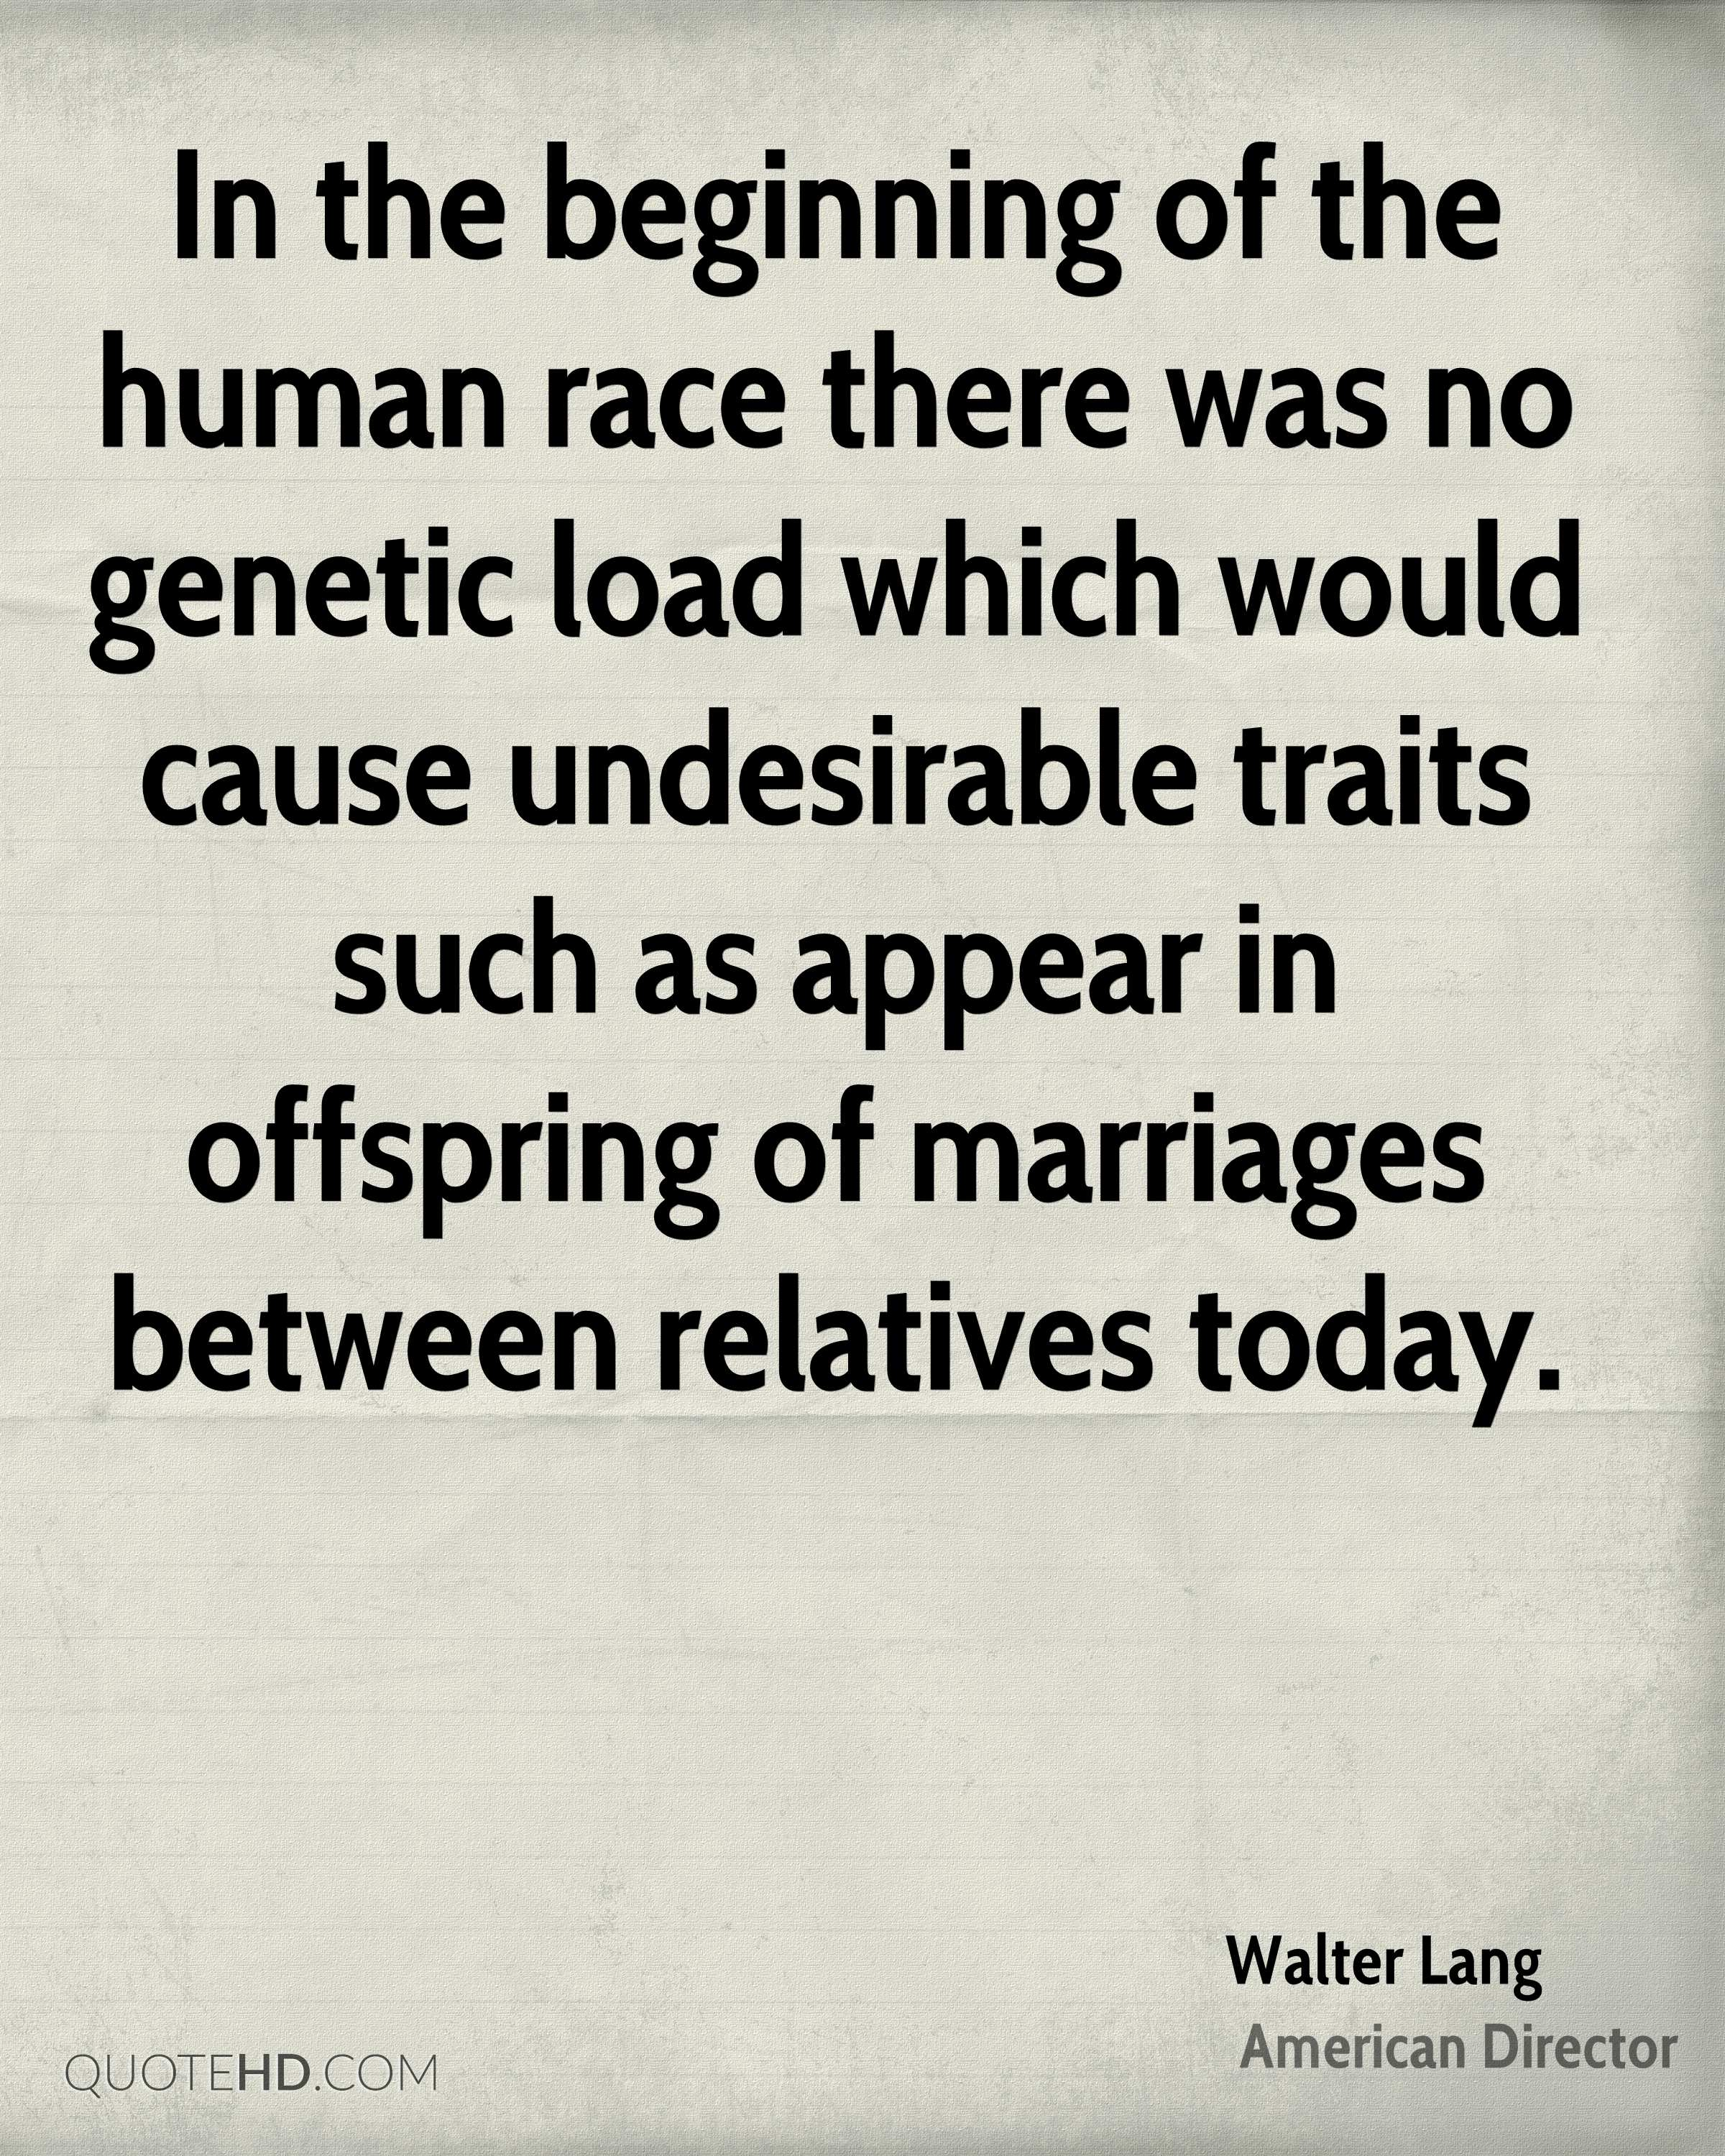 In the beginning of the human race there was no genetic load which would cause undesirable traits such as appear in offspring of marriages between relatives today.